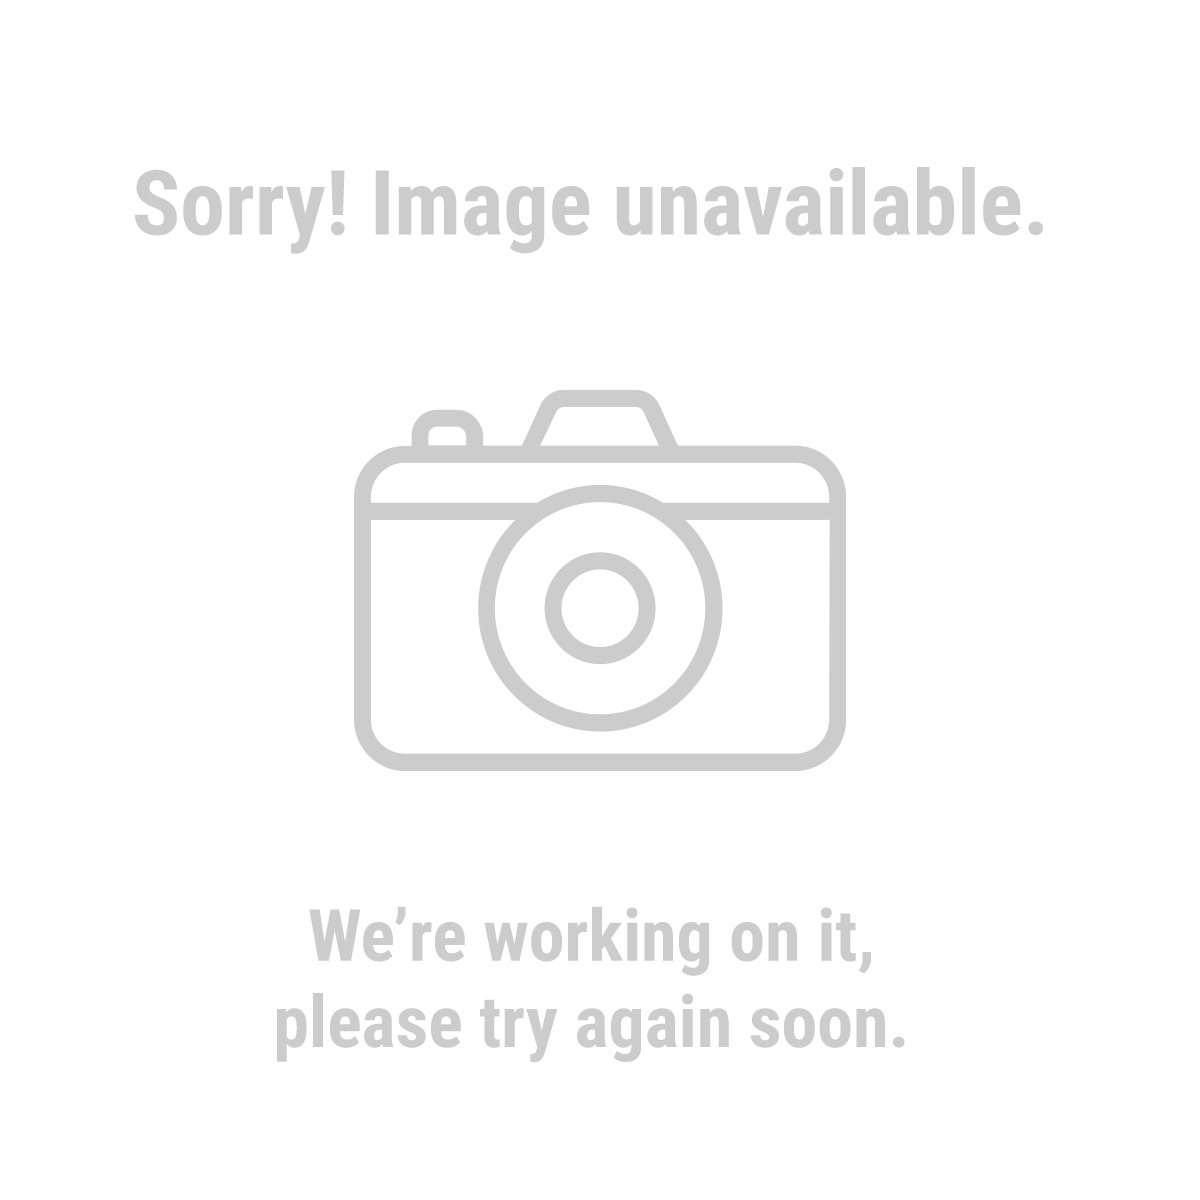 CreekStone 63403 200 GPH Submersible Fountain Pump